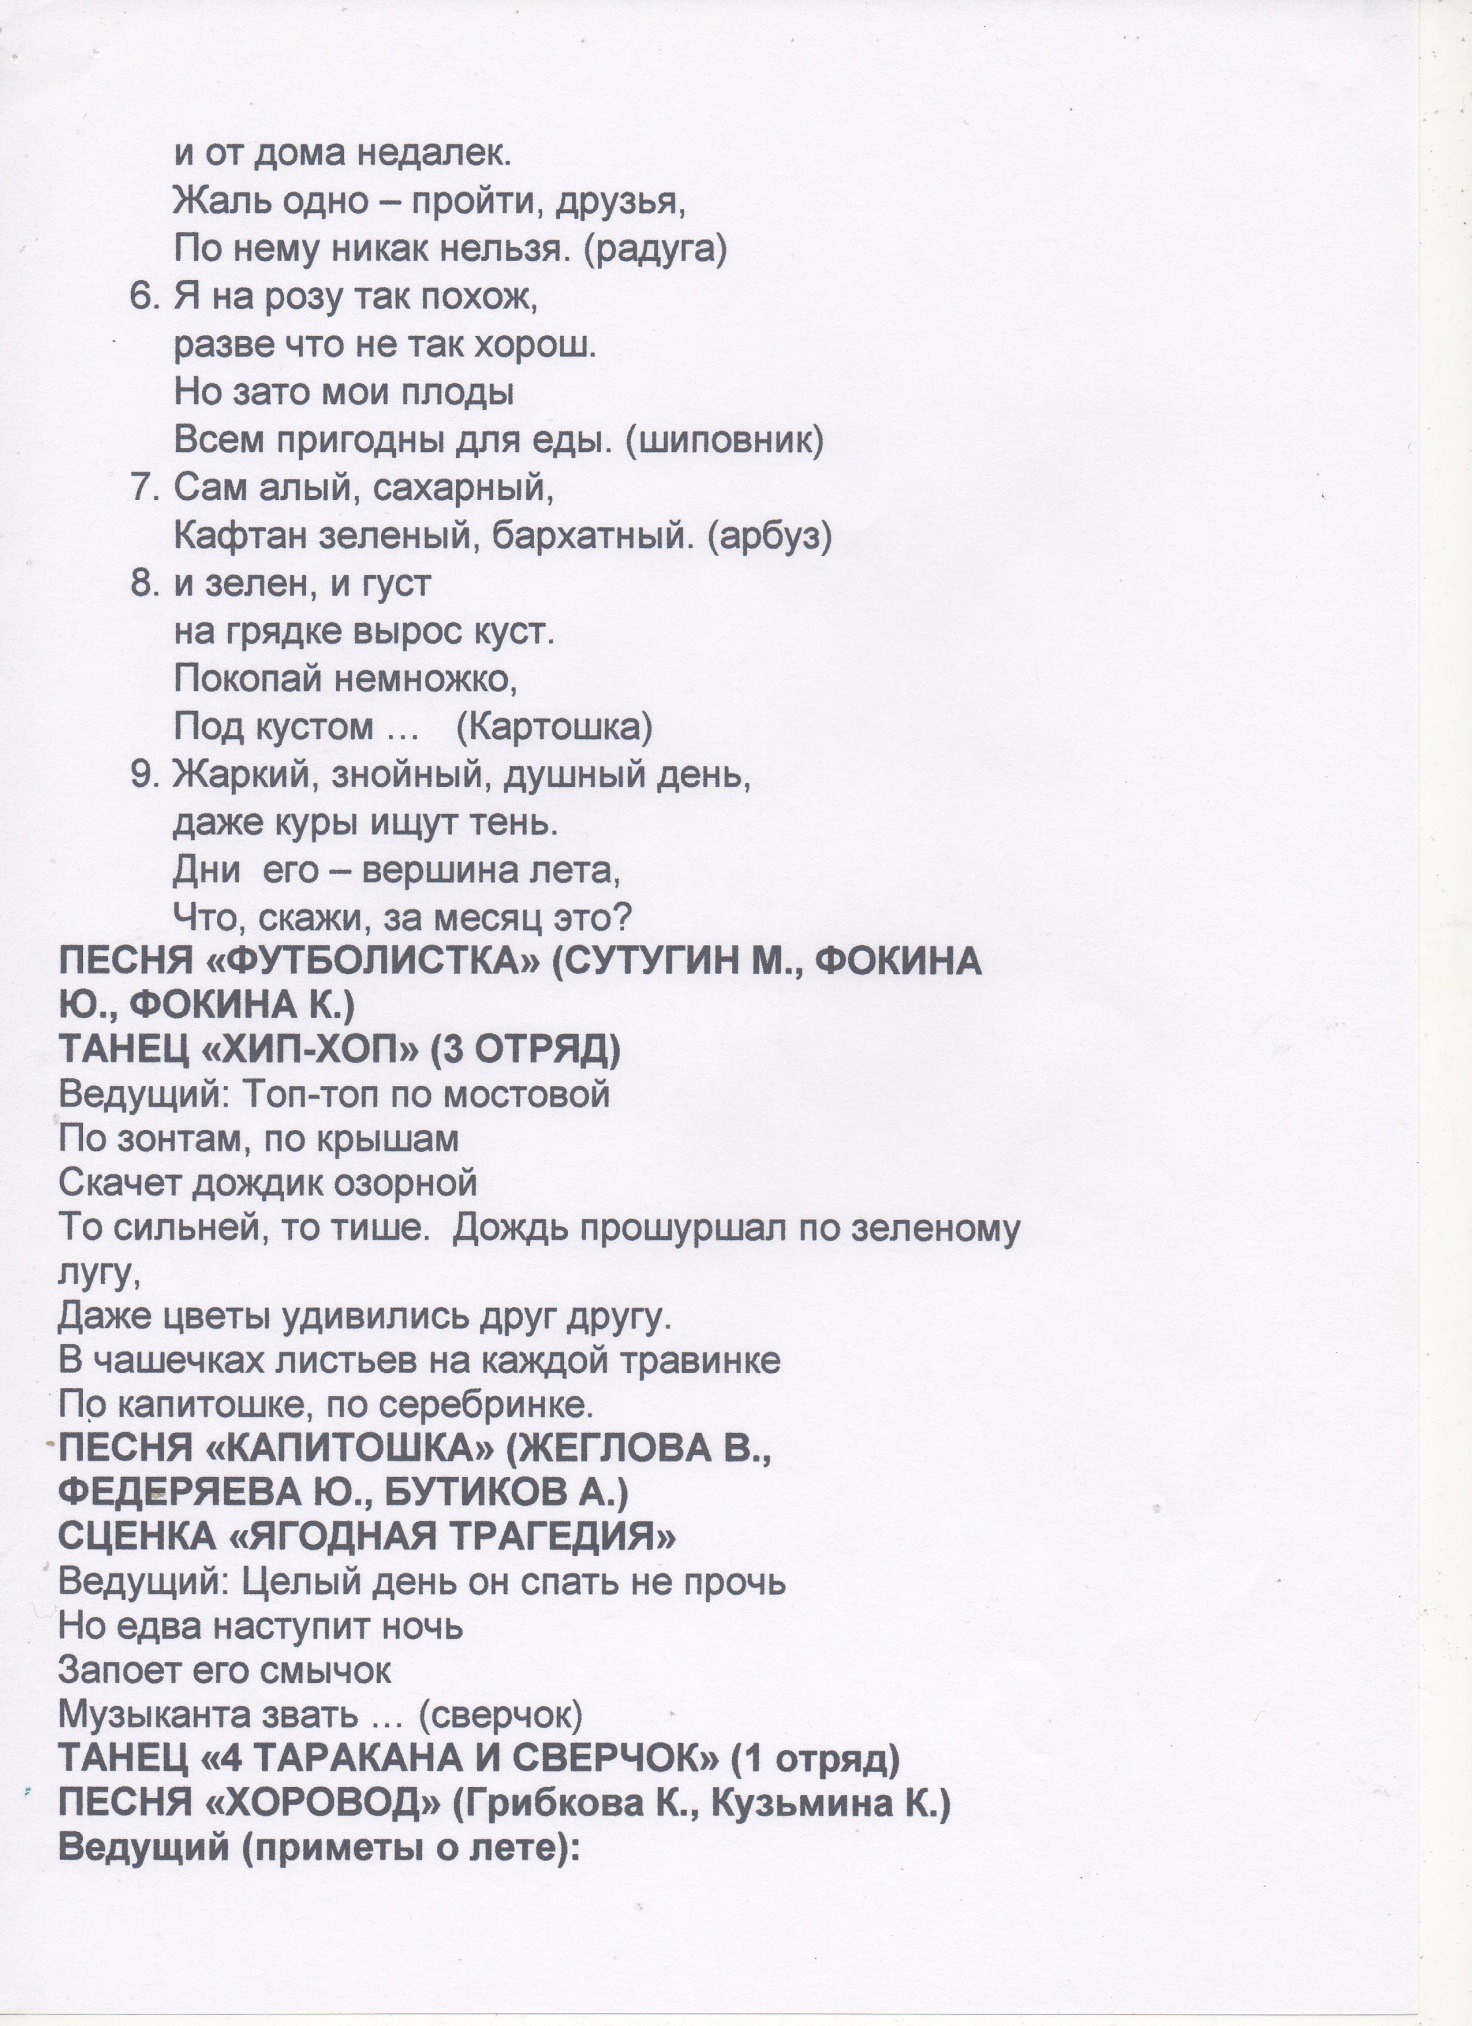 C:\Users\user\Pictures\скан\5.jpg